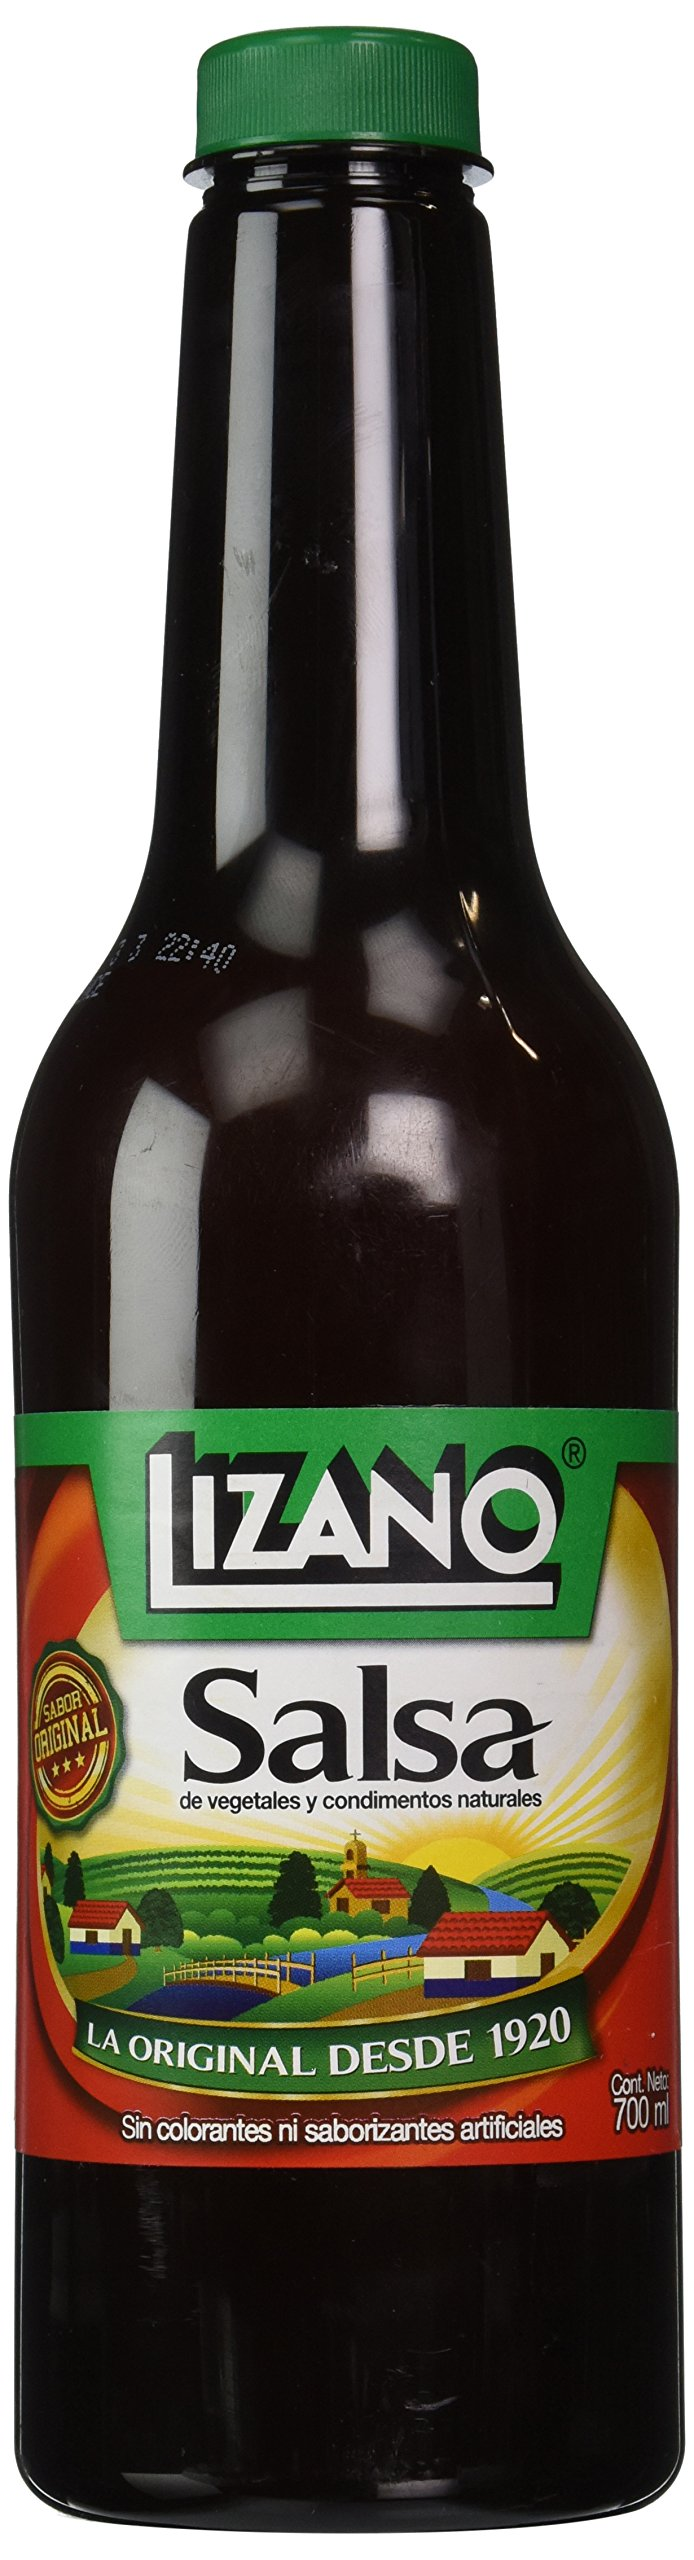 Lizano Salsa, 24.7 Oz | 700ml